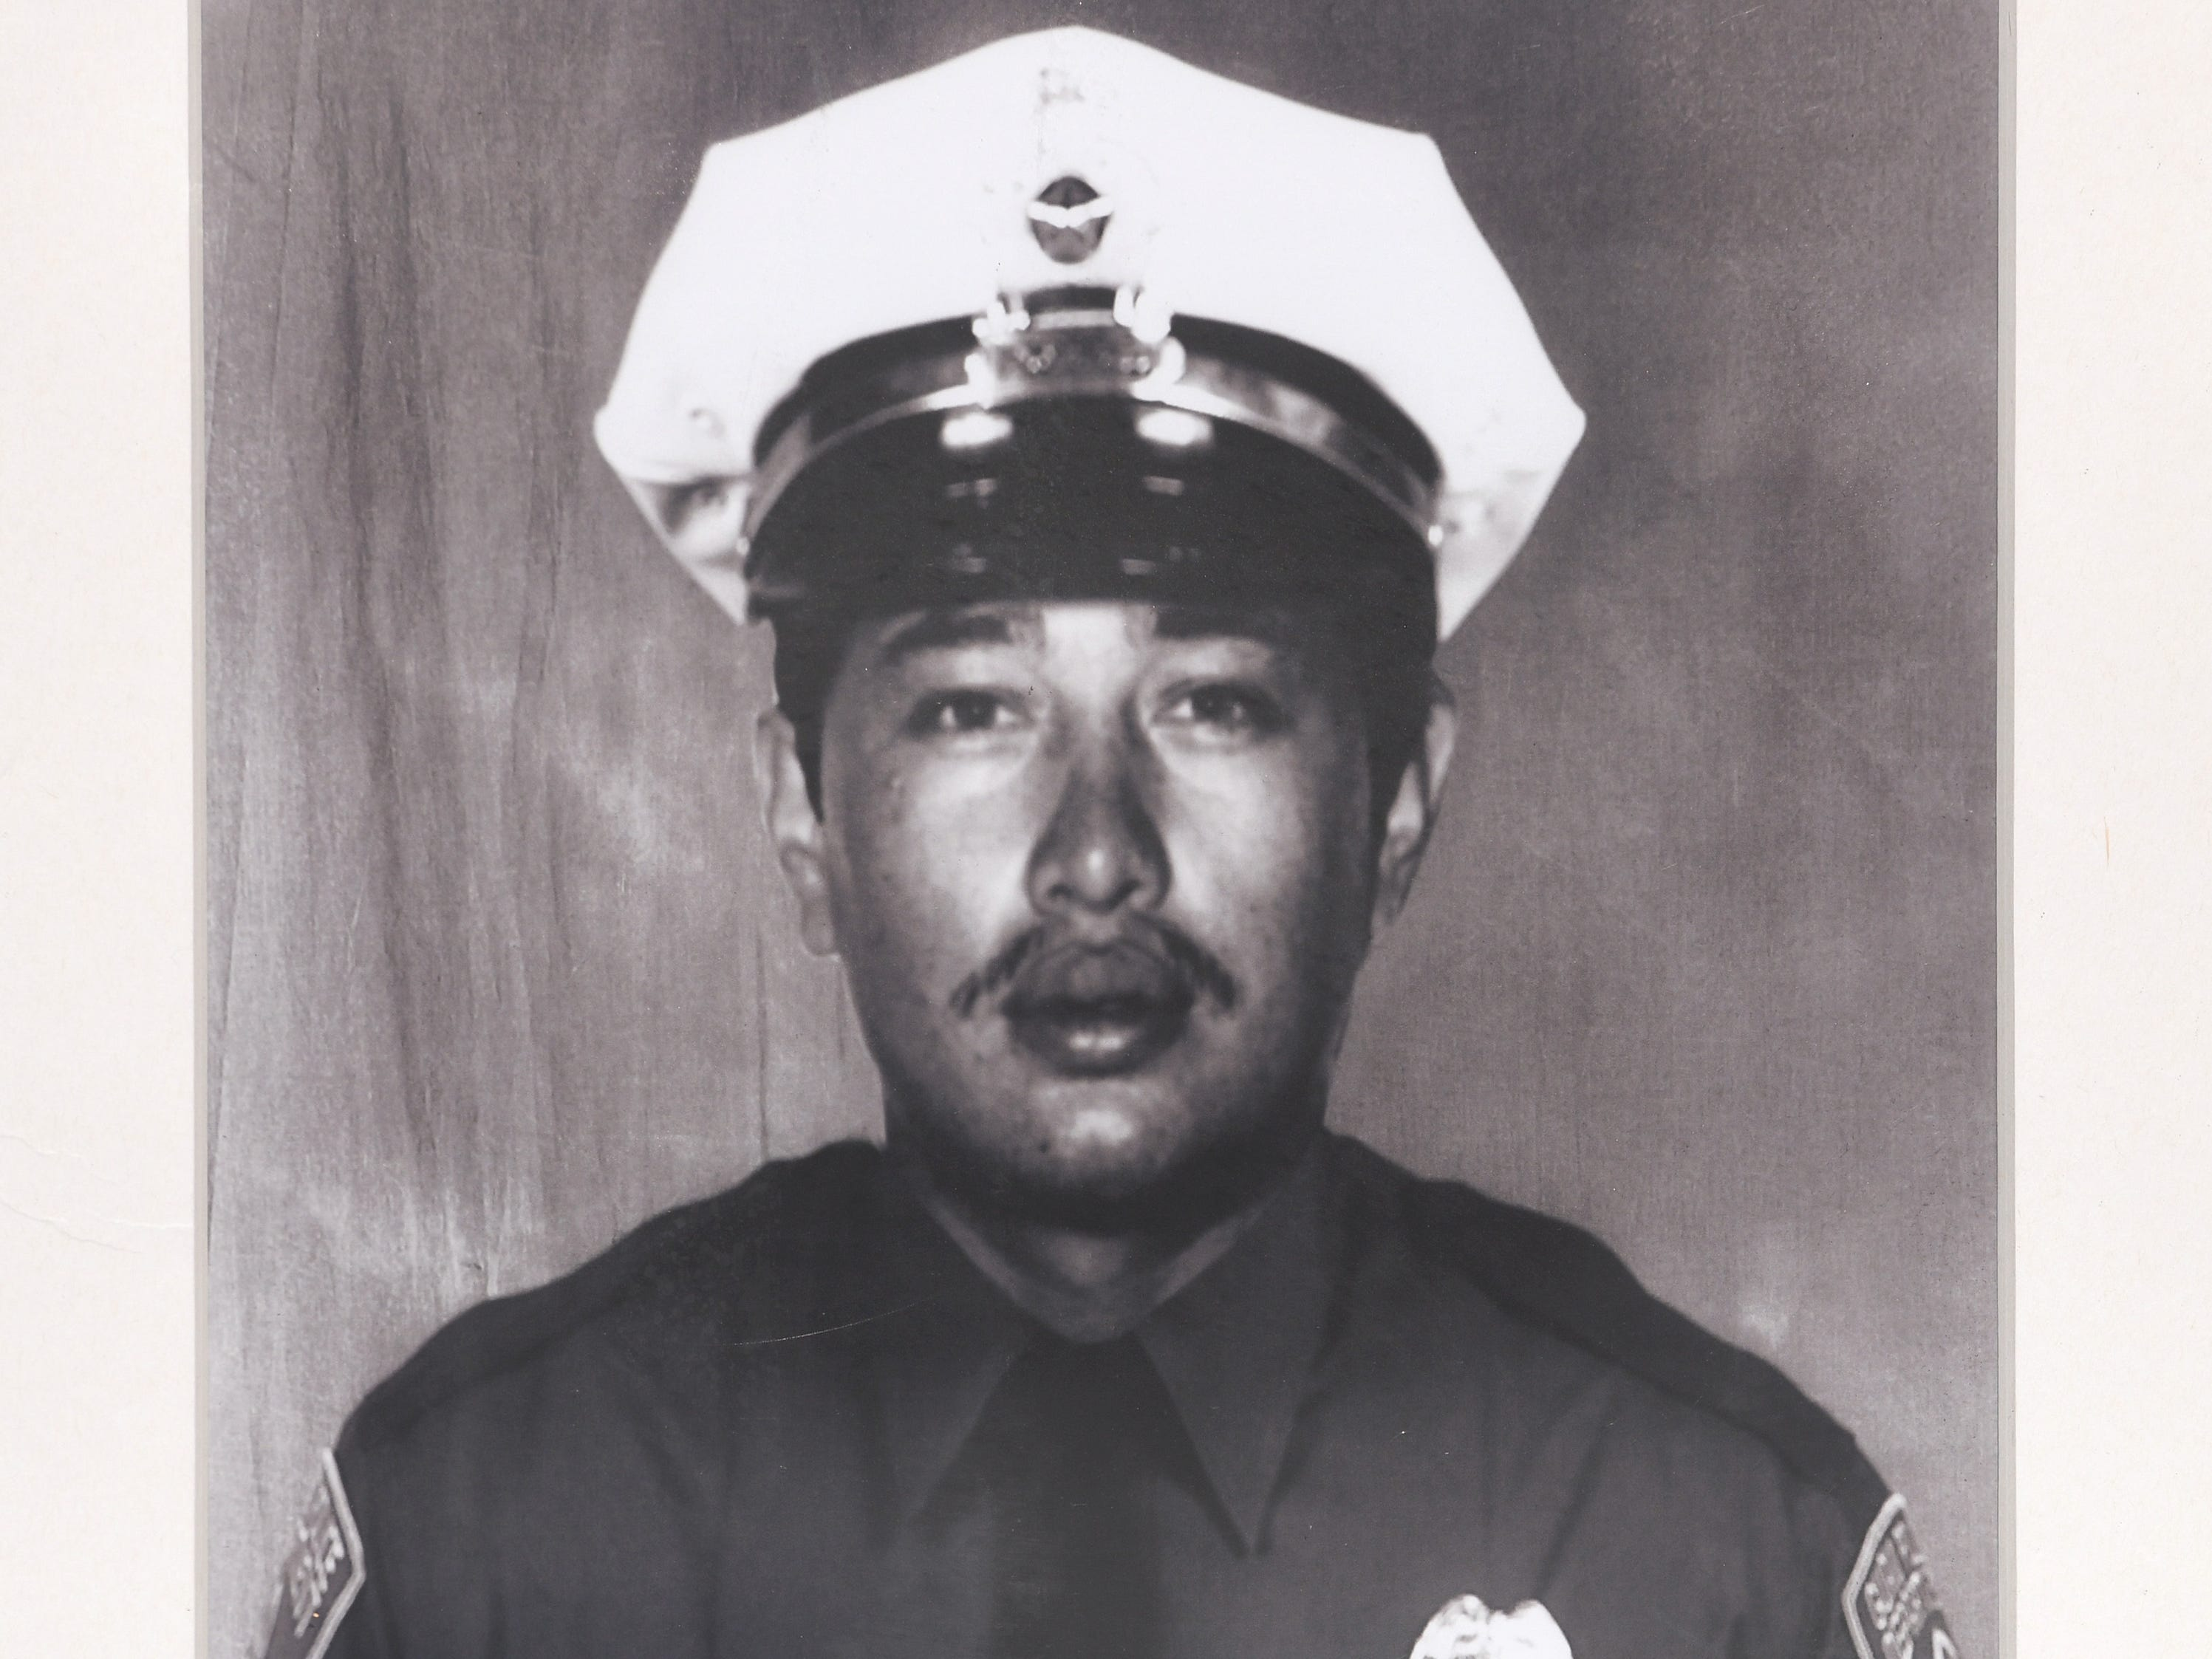 Police Officer Manuel Aquino